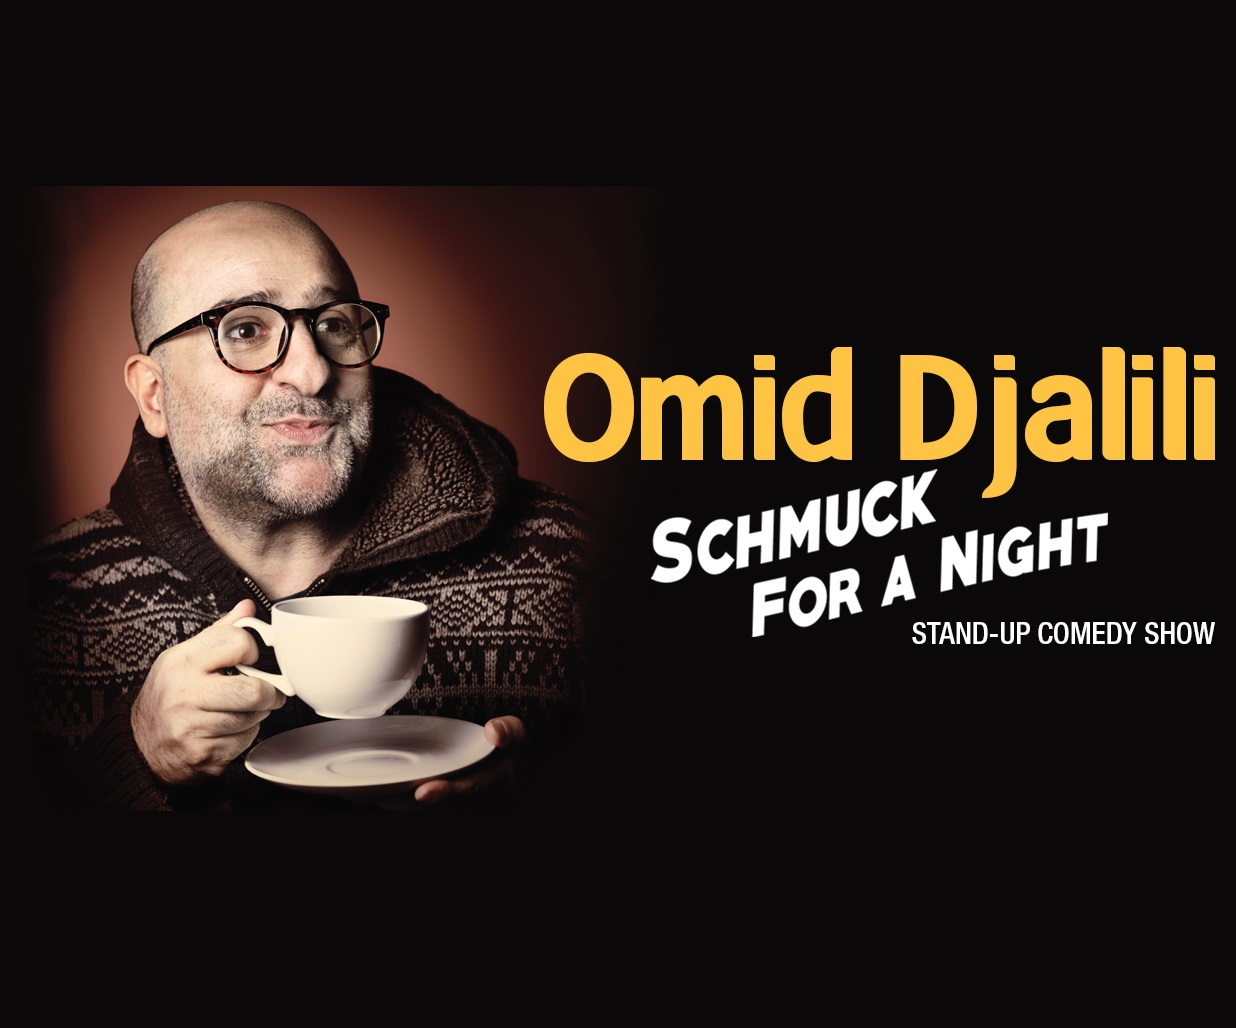 omid djalili stand-up comedy